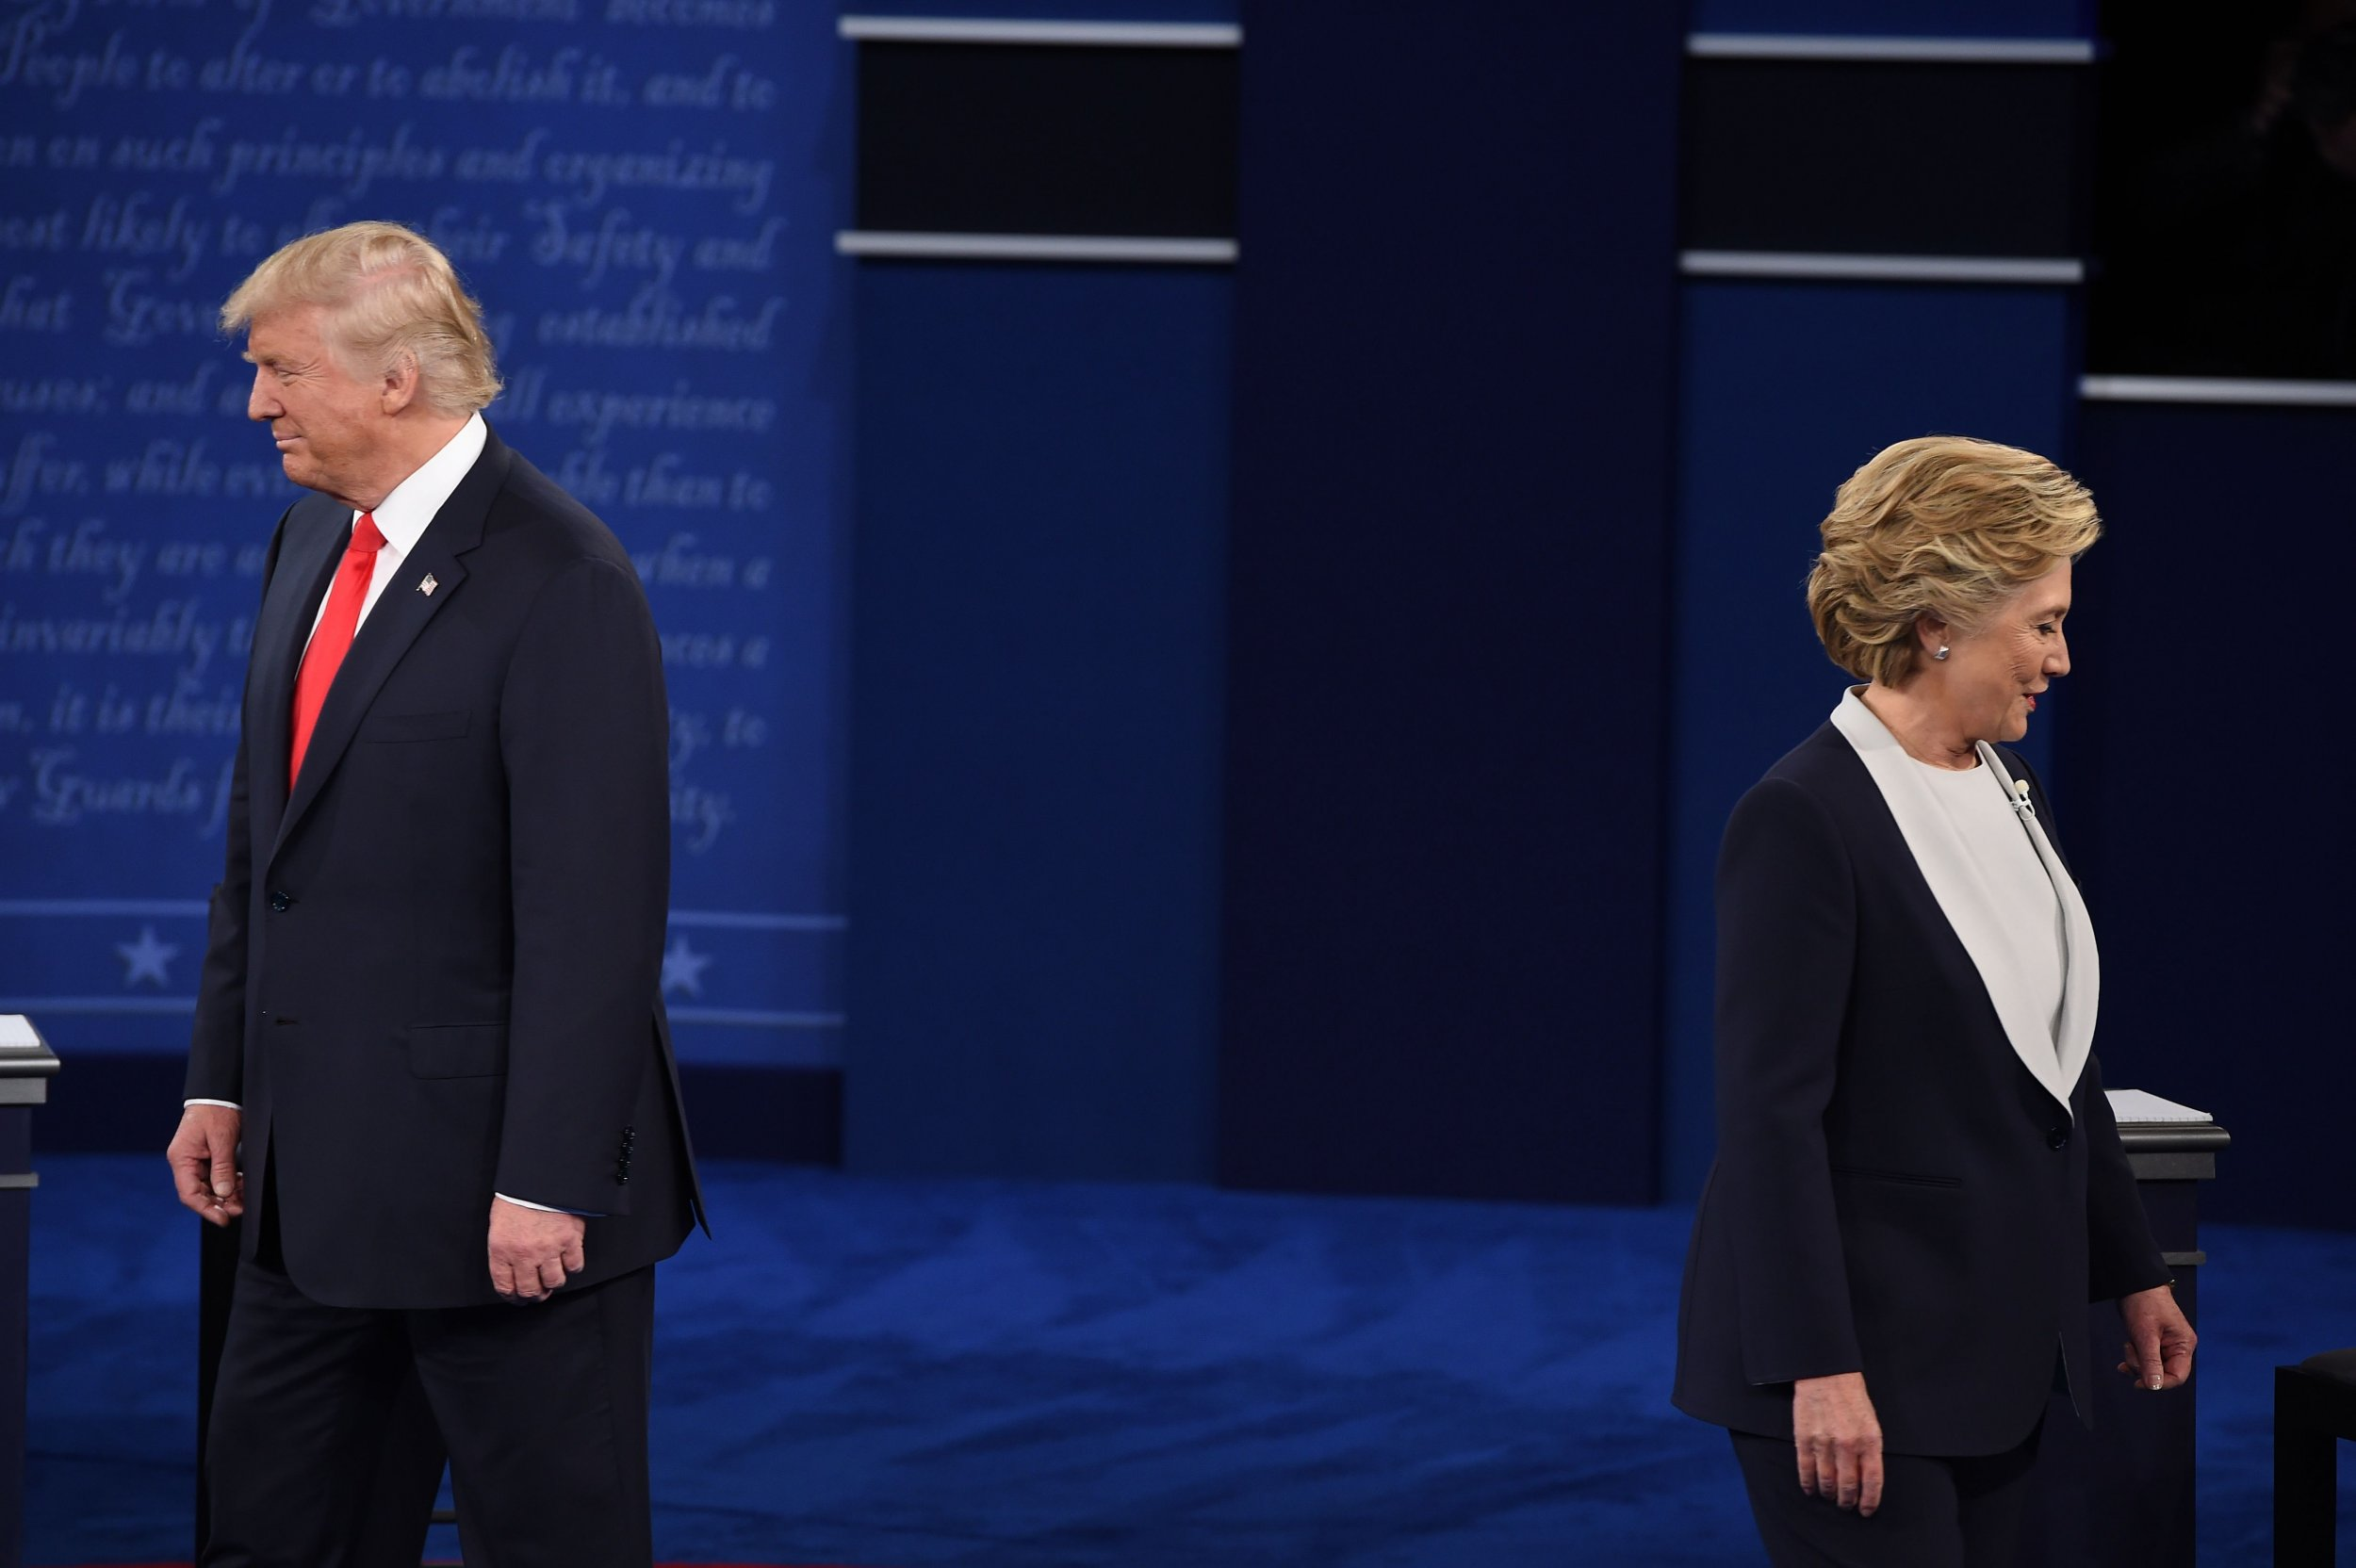 Trump Vs Clinton In Second U S Presidential Debate Full Transcript